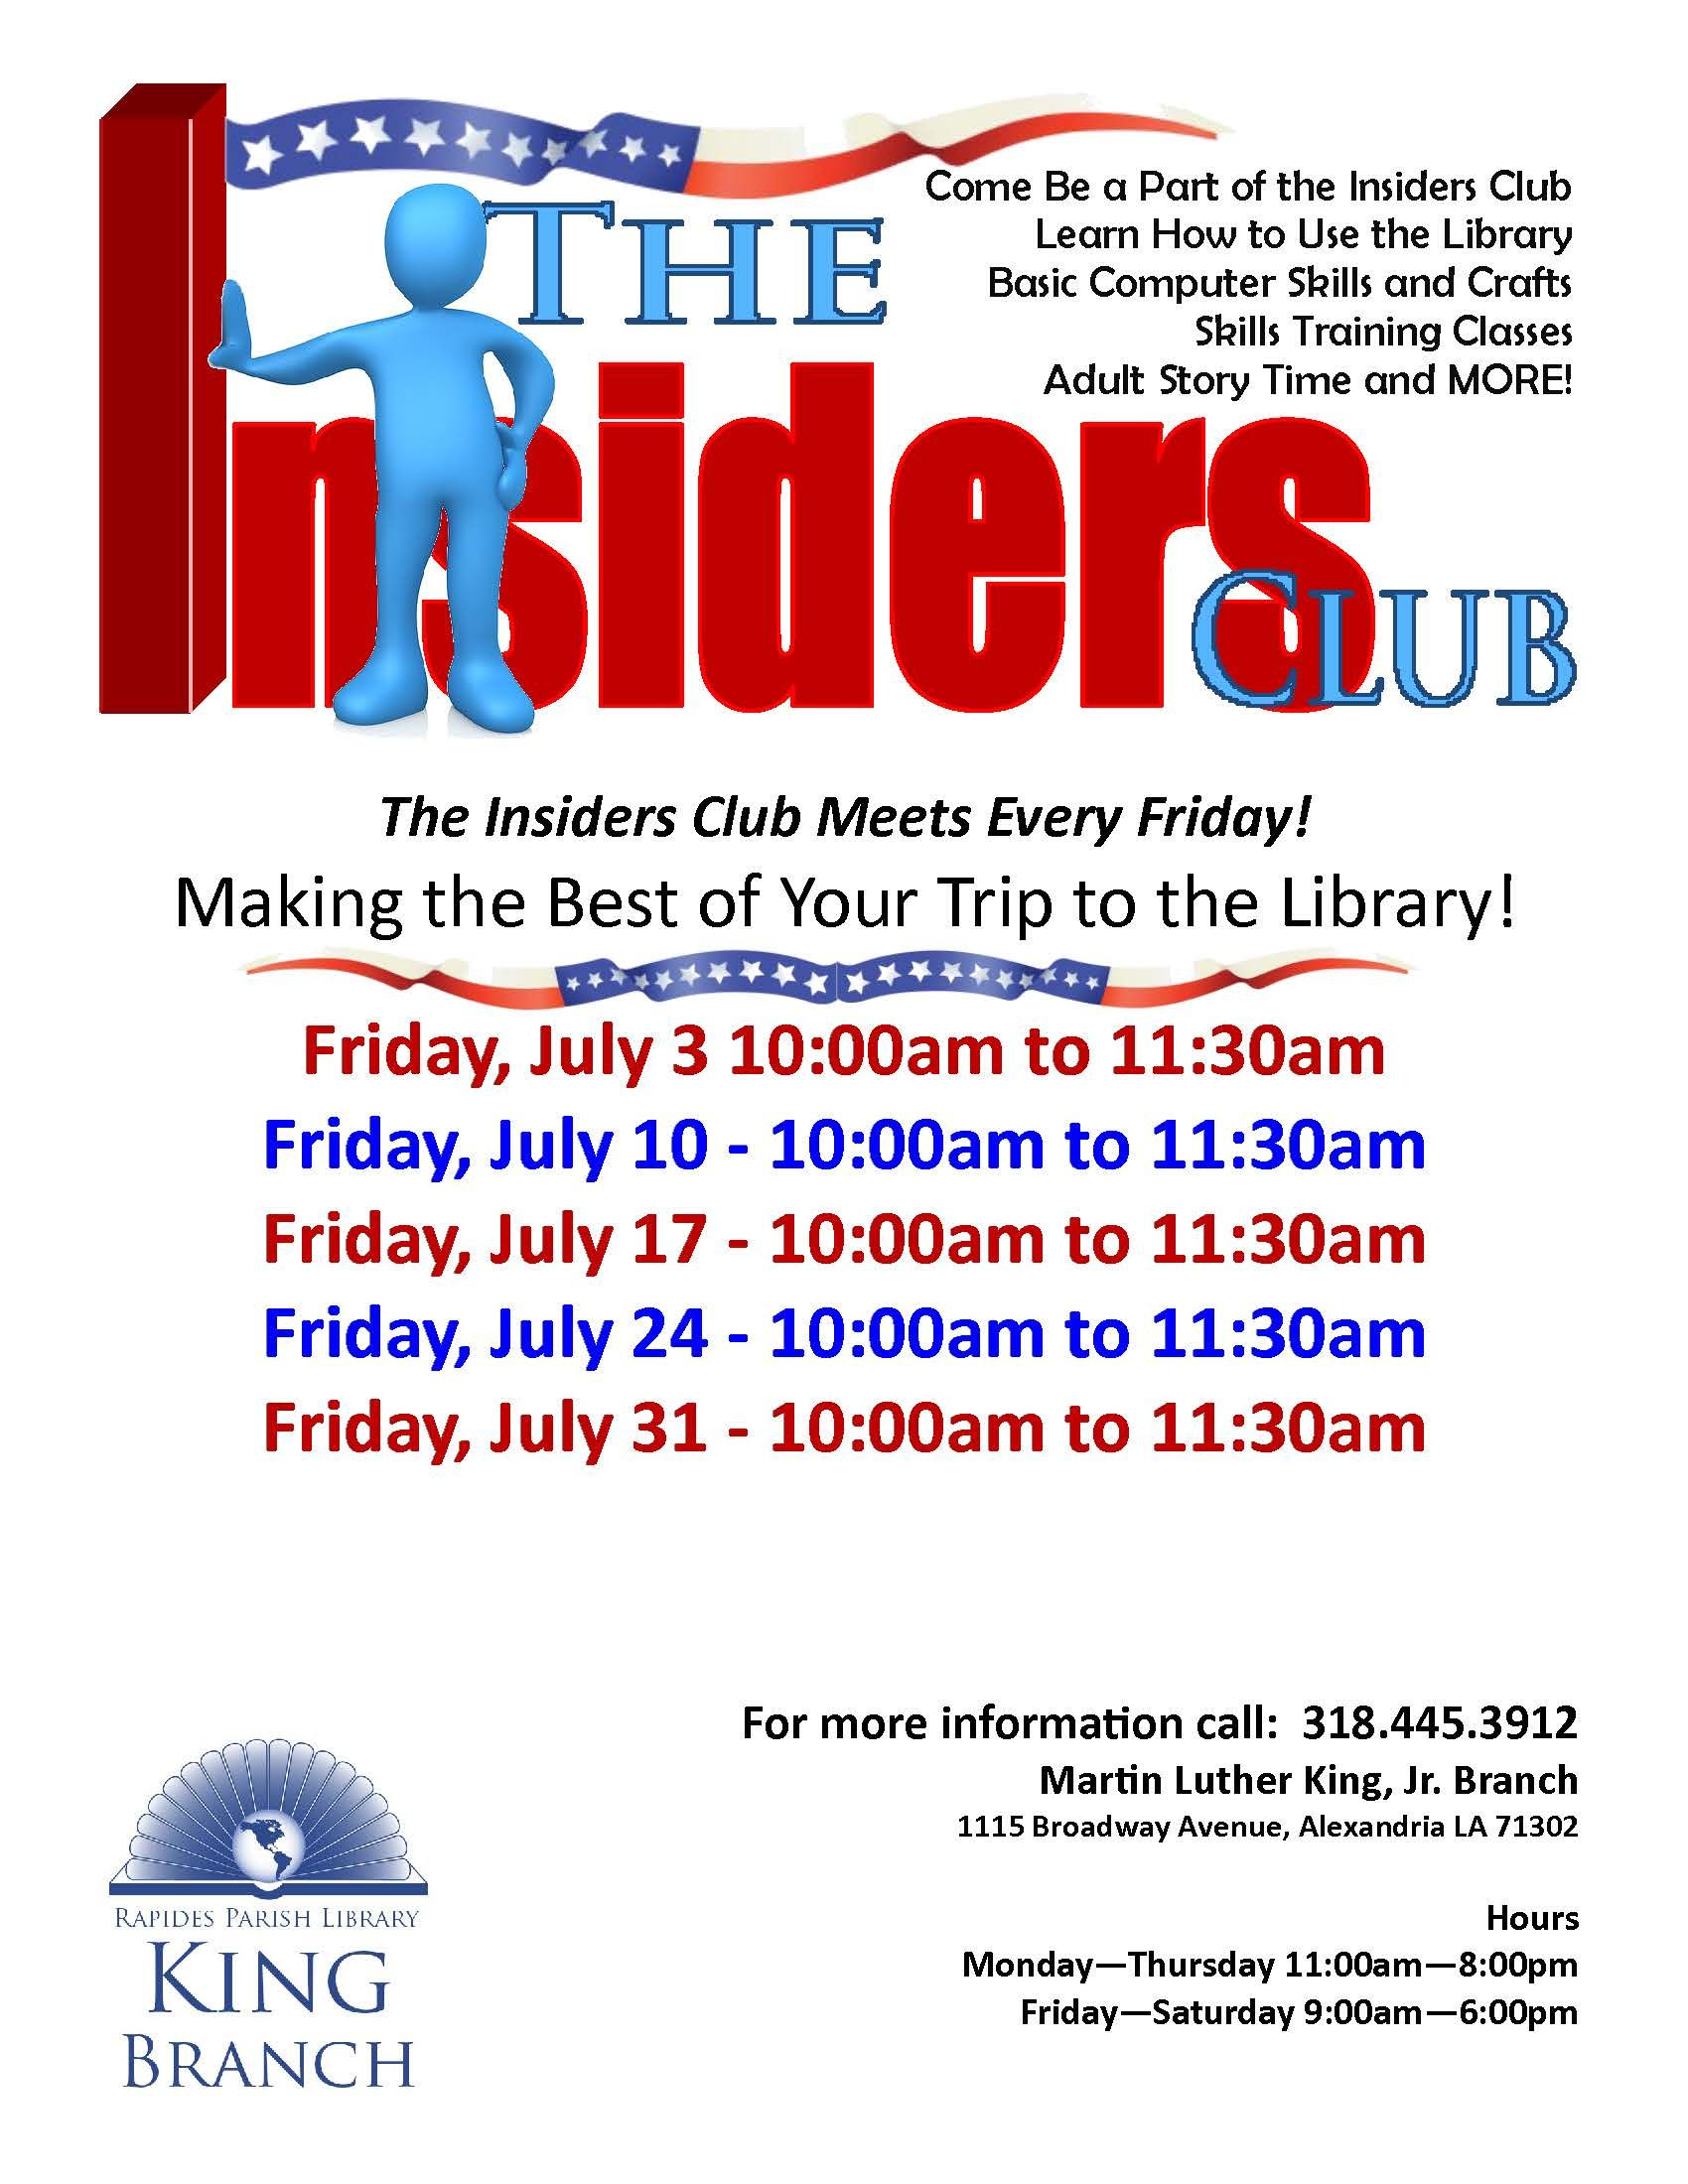 King Branch - The Insiders Club meets every Friday! Make the most of your trip to the Library.